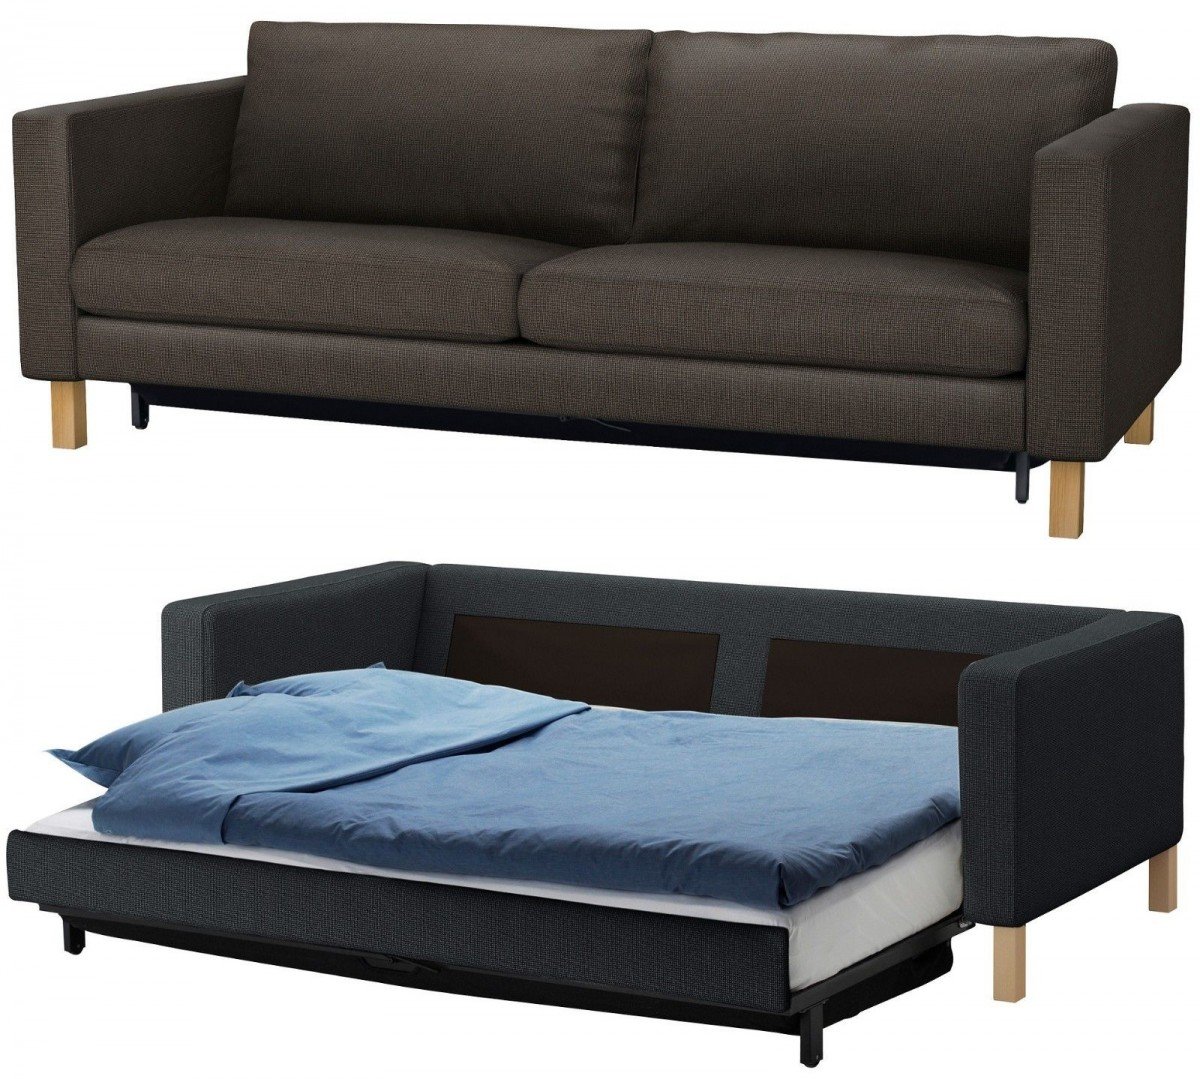 Enhancing a Stylish HOME With Sectional sleeper sofa ikea  : sectional sleeper sofa ikea 5 from interiorexteriordoors.com size 1200 x 1079 jpeg 235kB